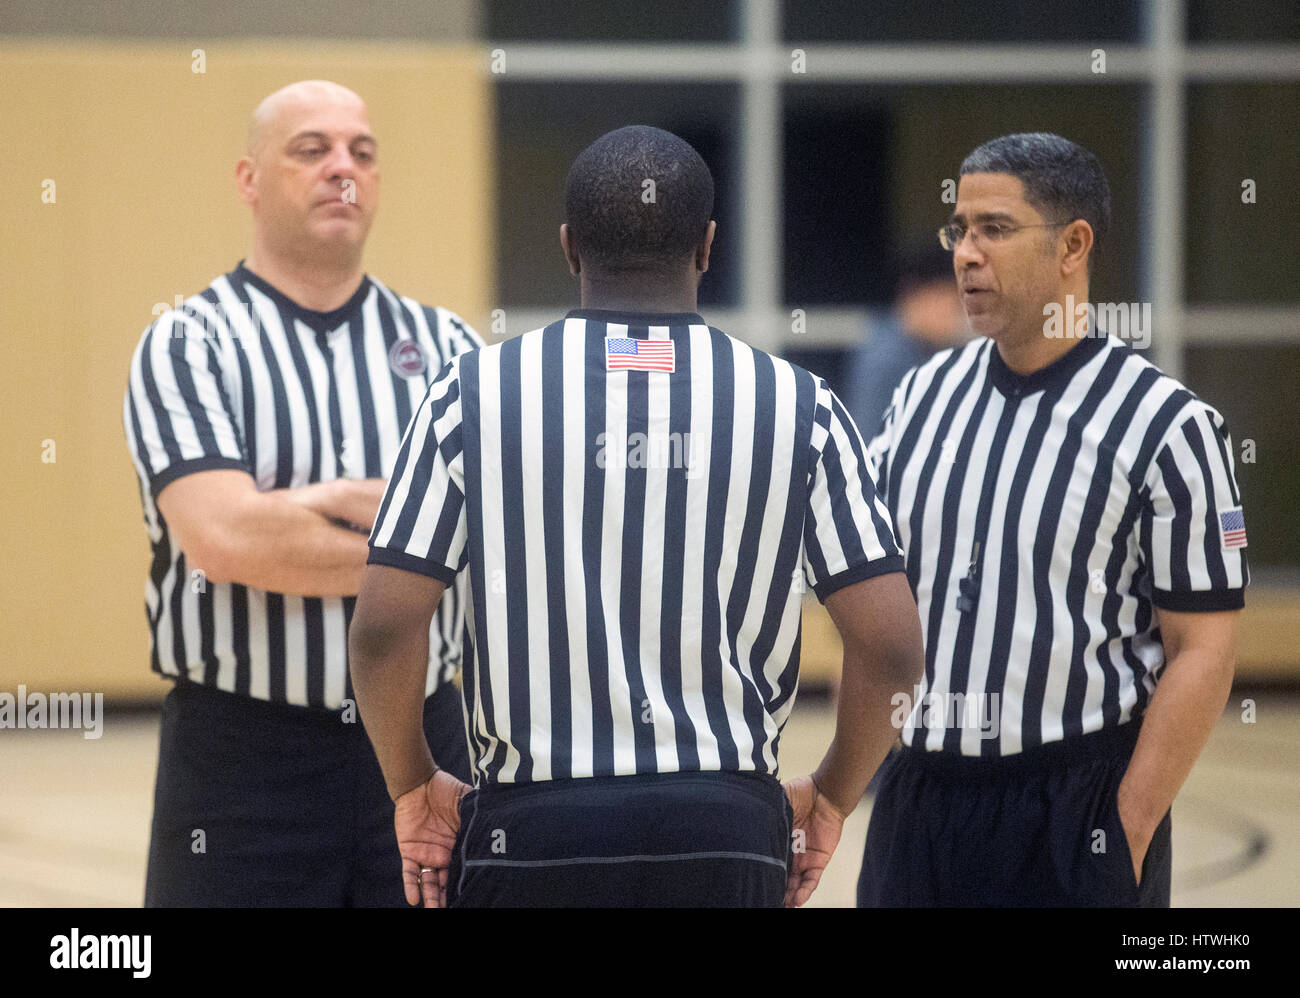 Basketball referees at a game - Stock Image